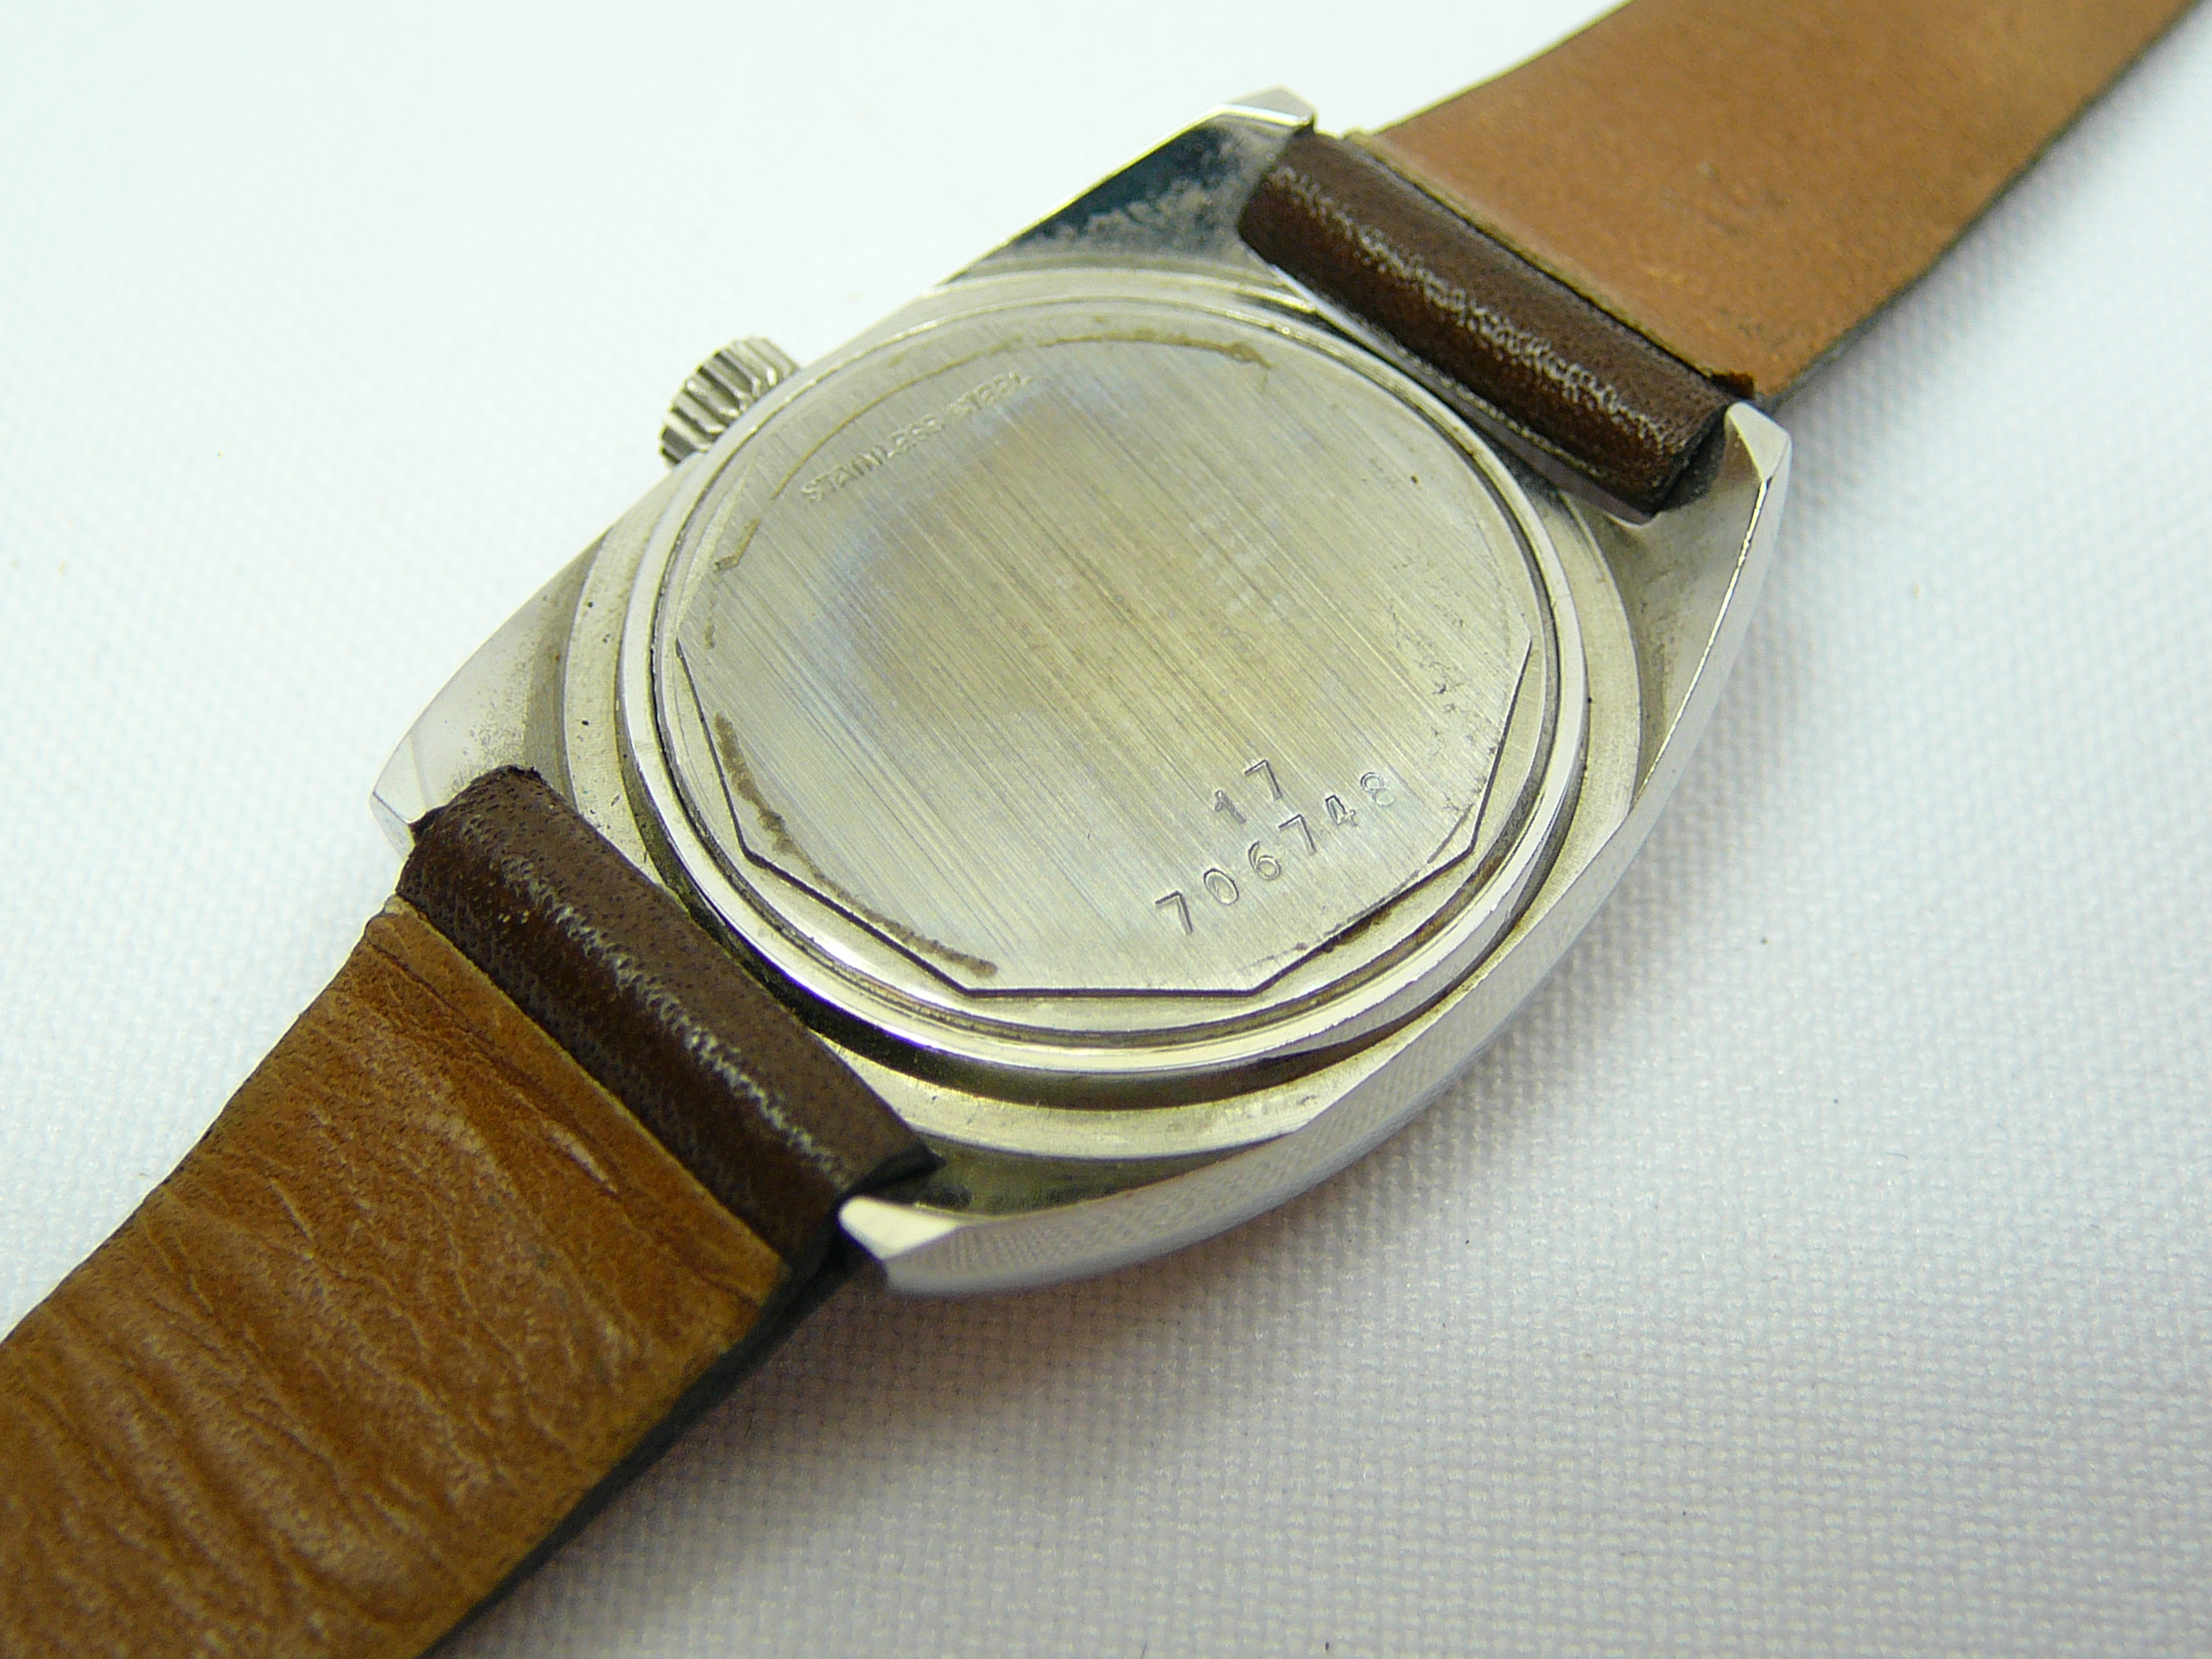 Ladies Vintage Longines Wrist Watch - Image 3 of 3